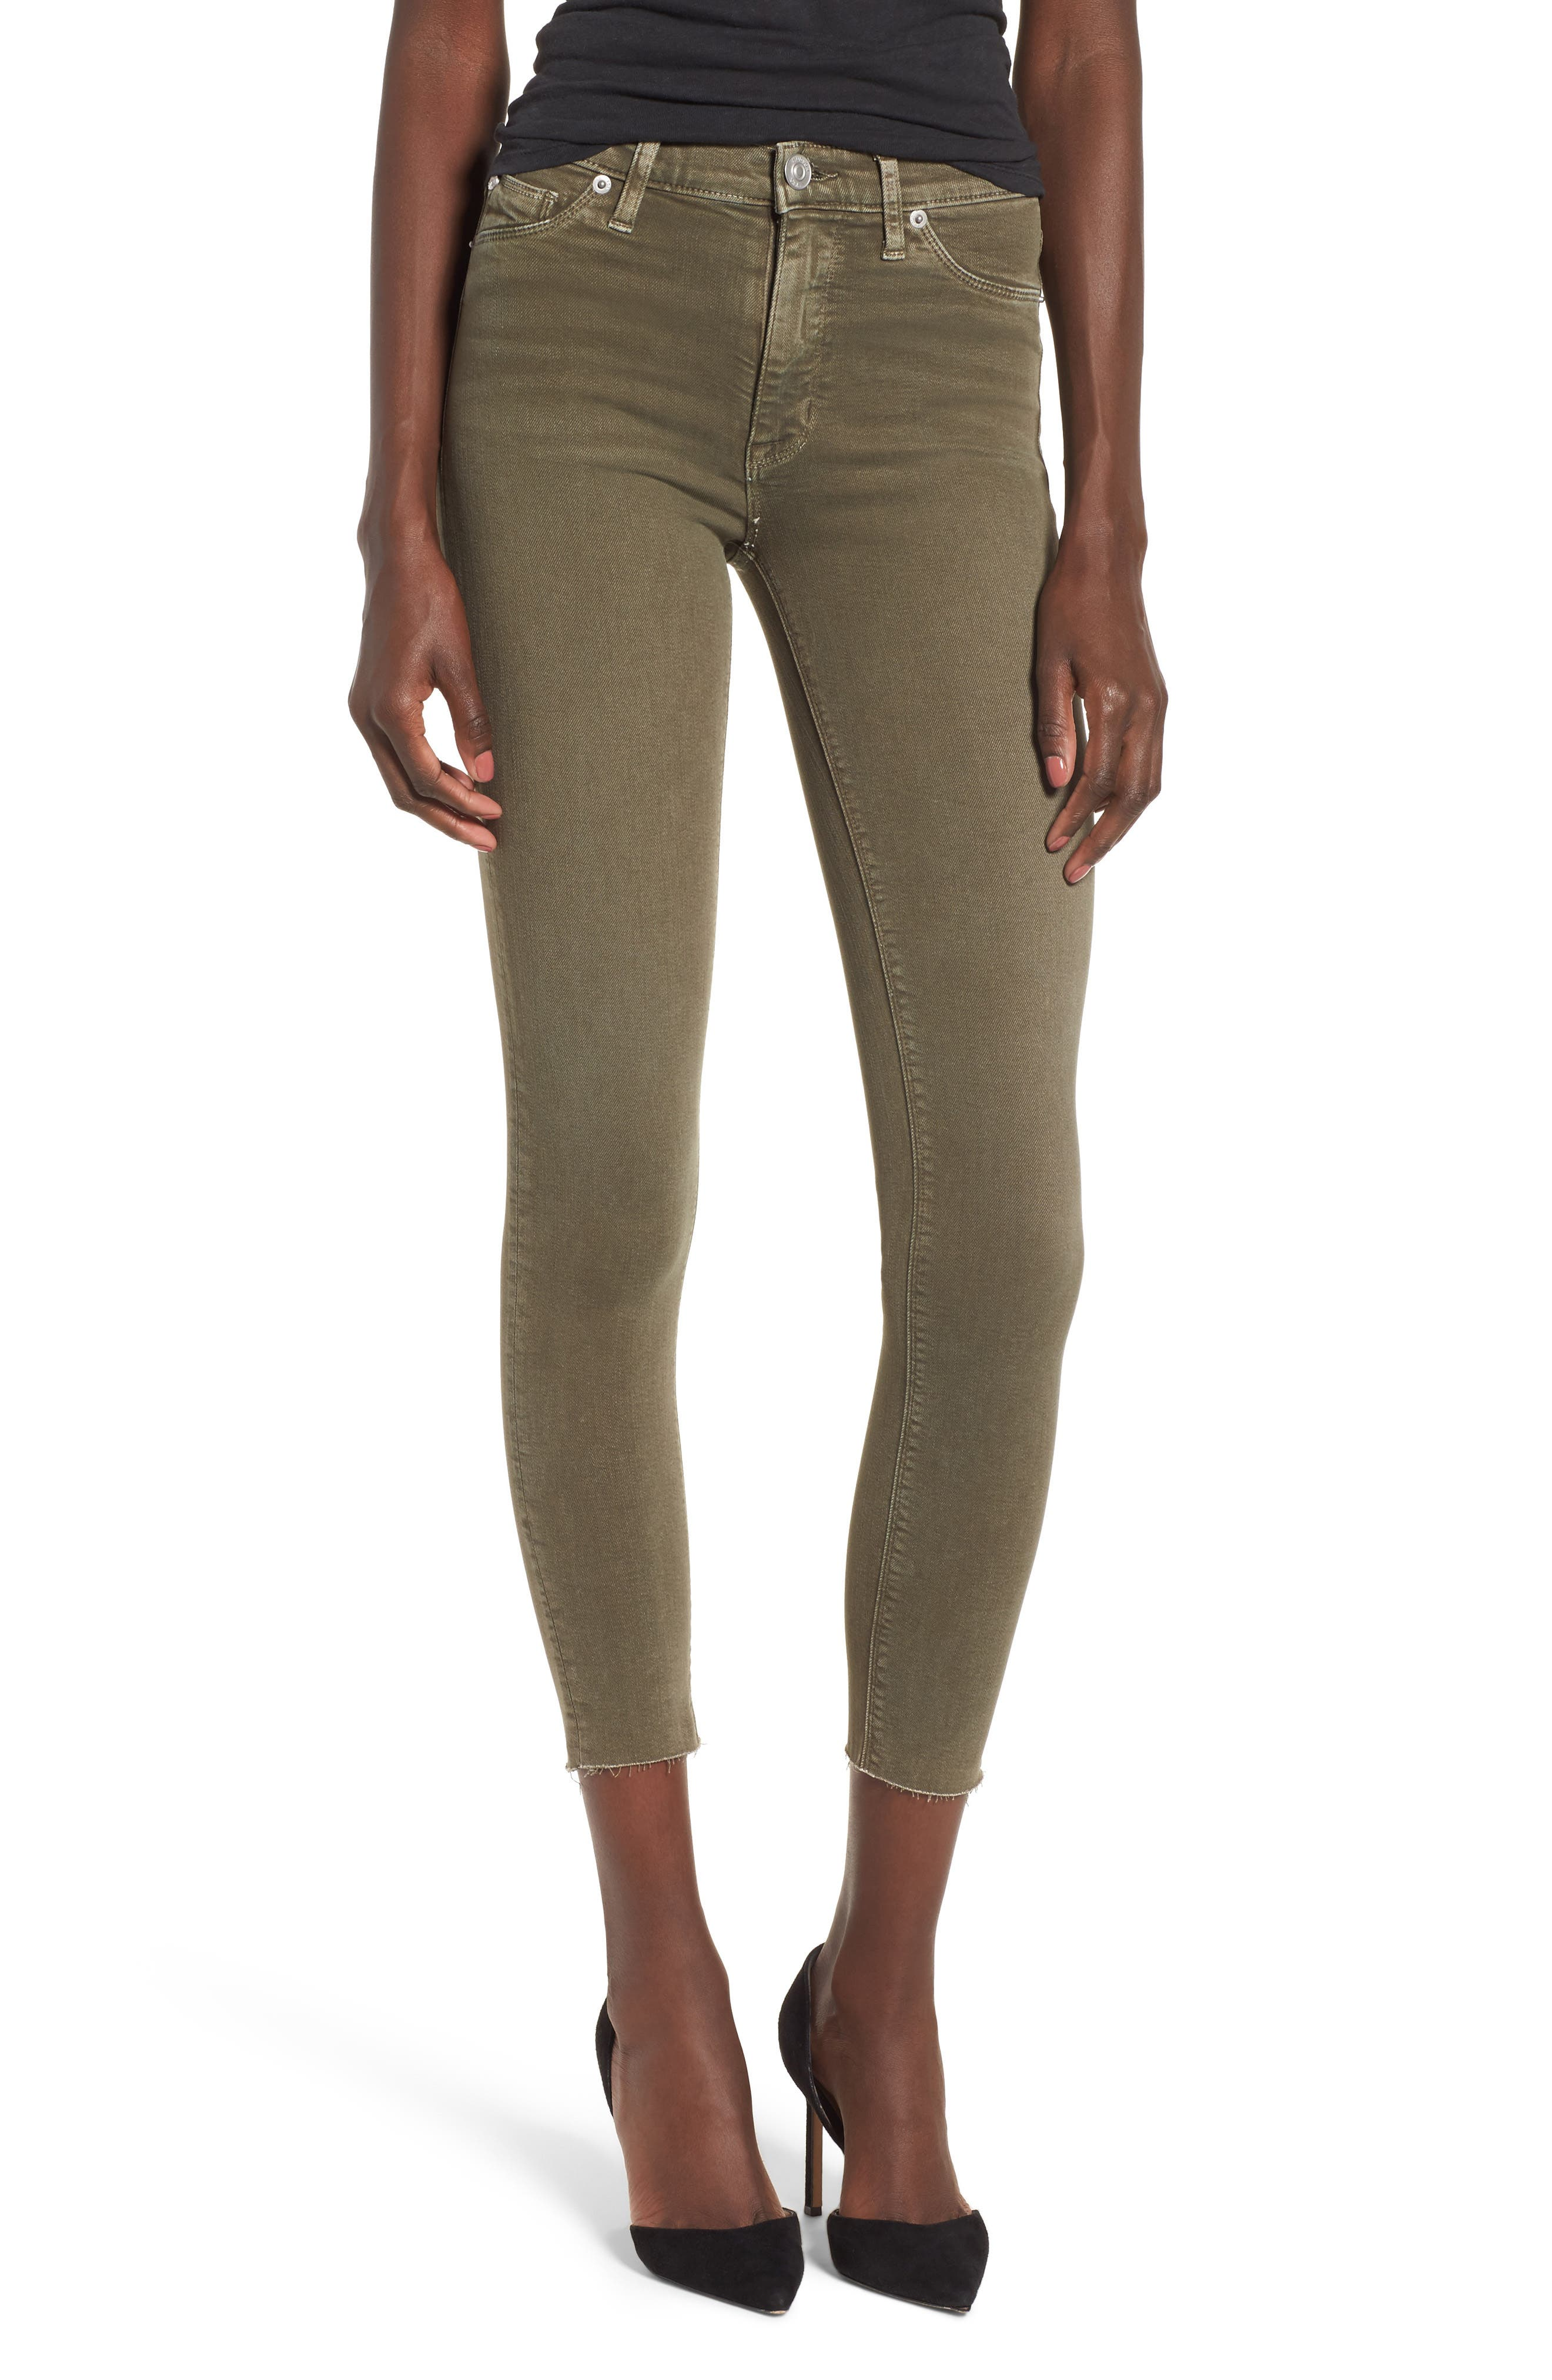 Alternate Image 1 Selected - Hudson Jeans Barbara High Waist Ankle Skinny Jeans